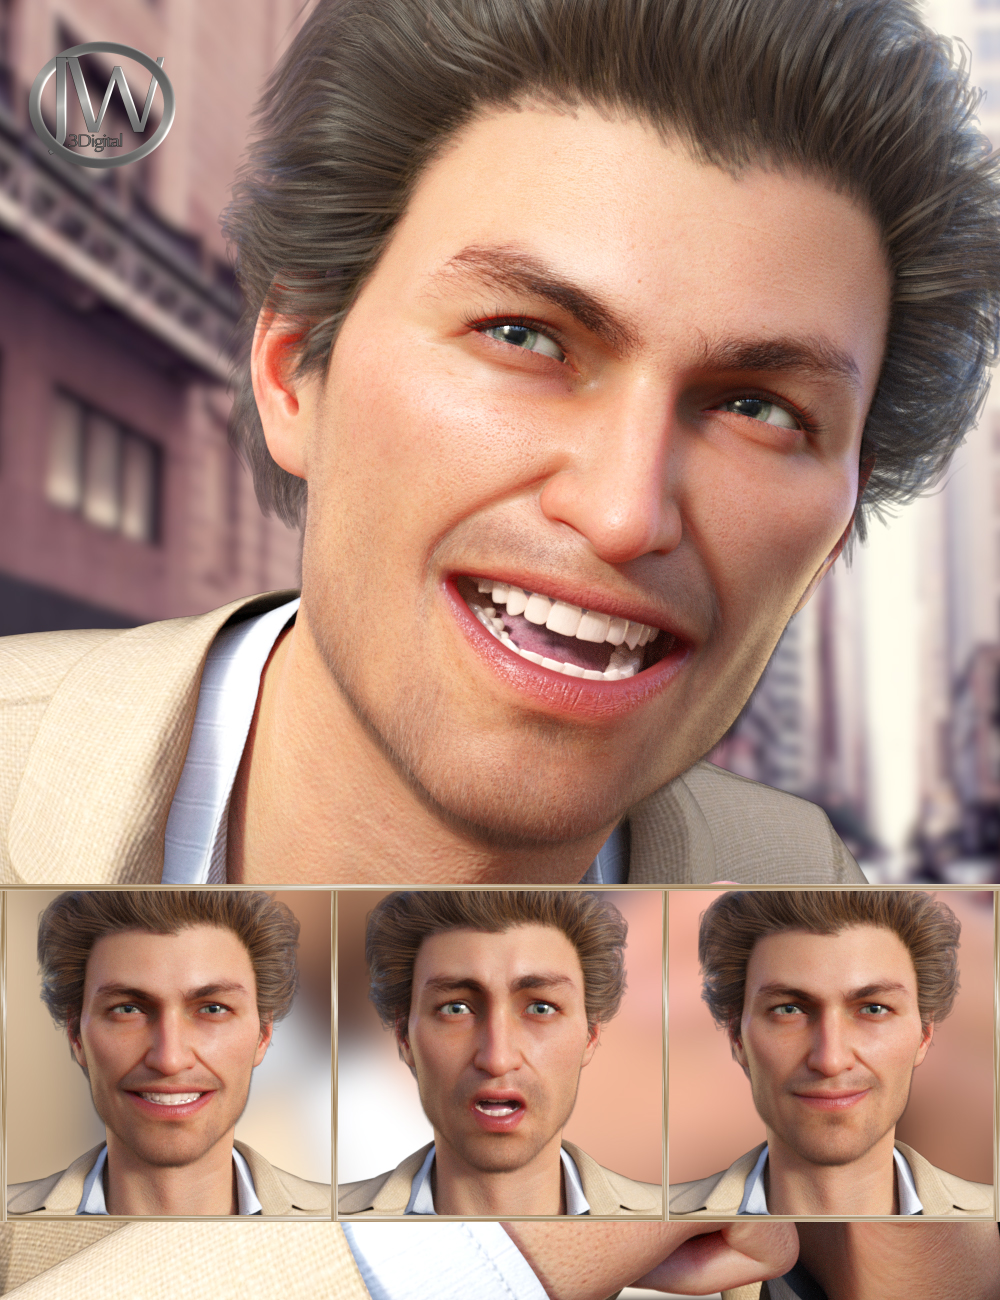 Stylish - Expressions for Genesis 8 Male and Jonathan 8 by: JWolf, 3D Models by Daz 3D